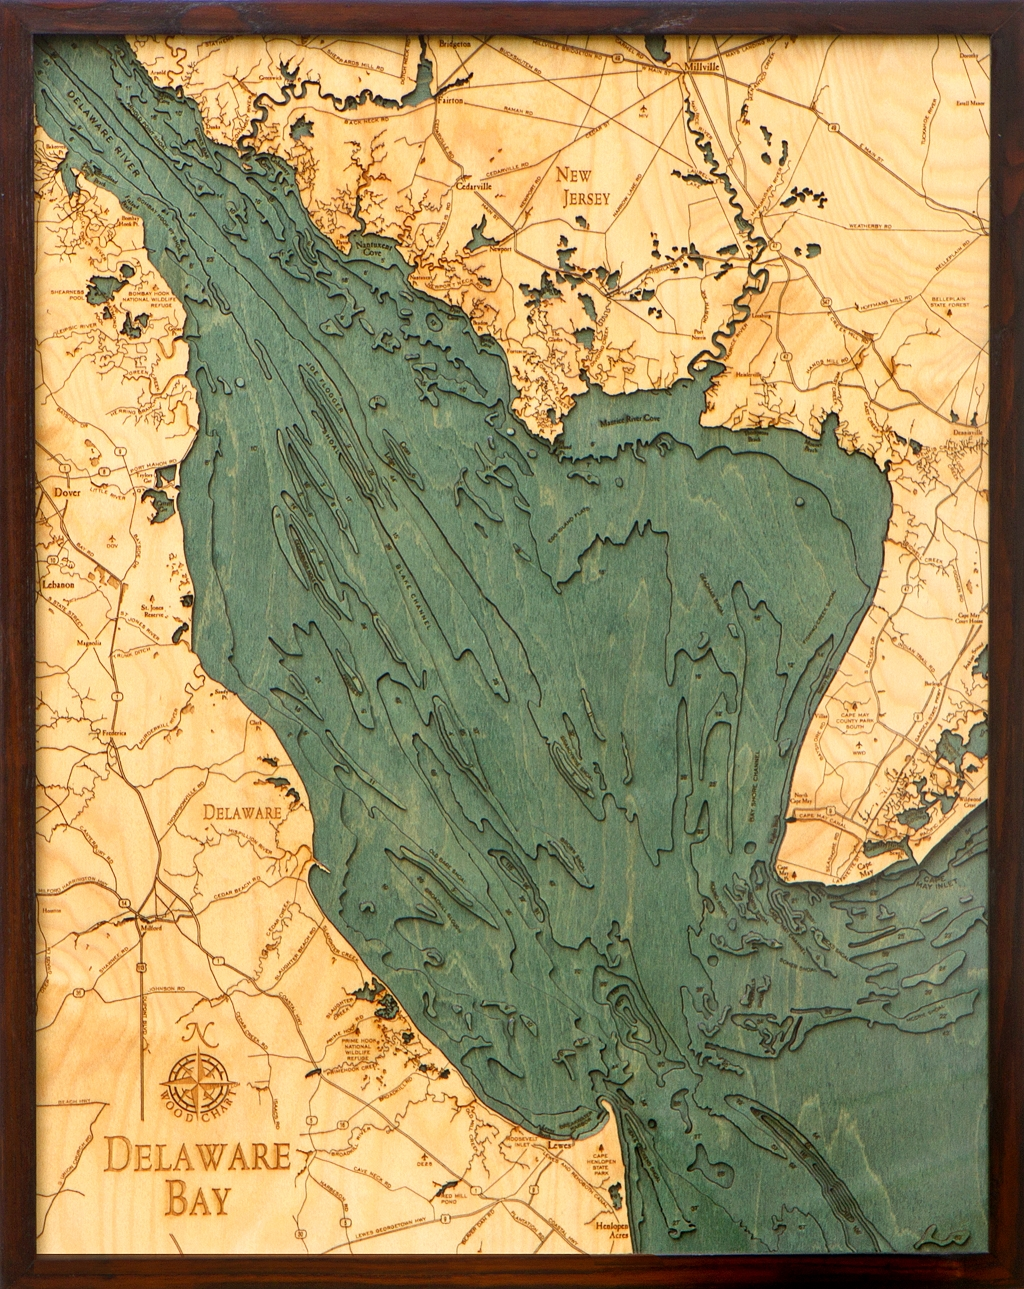 Chesapeake Bay Topographic Map.Delaware Bay Depth Chart Delaware Bay 3d Nautical Map